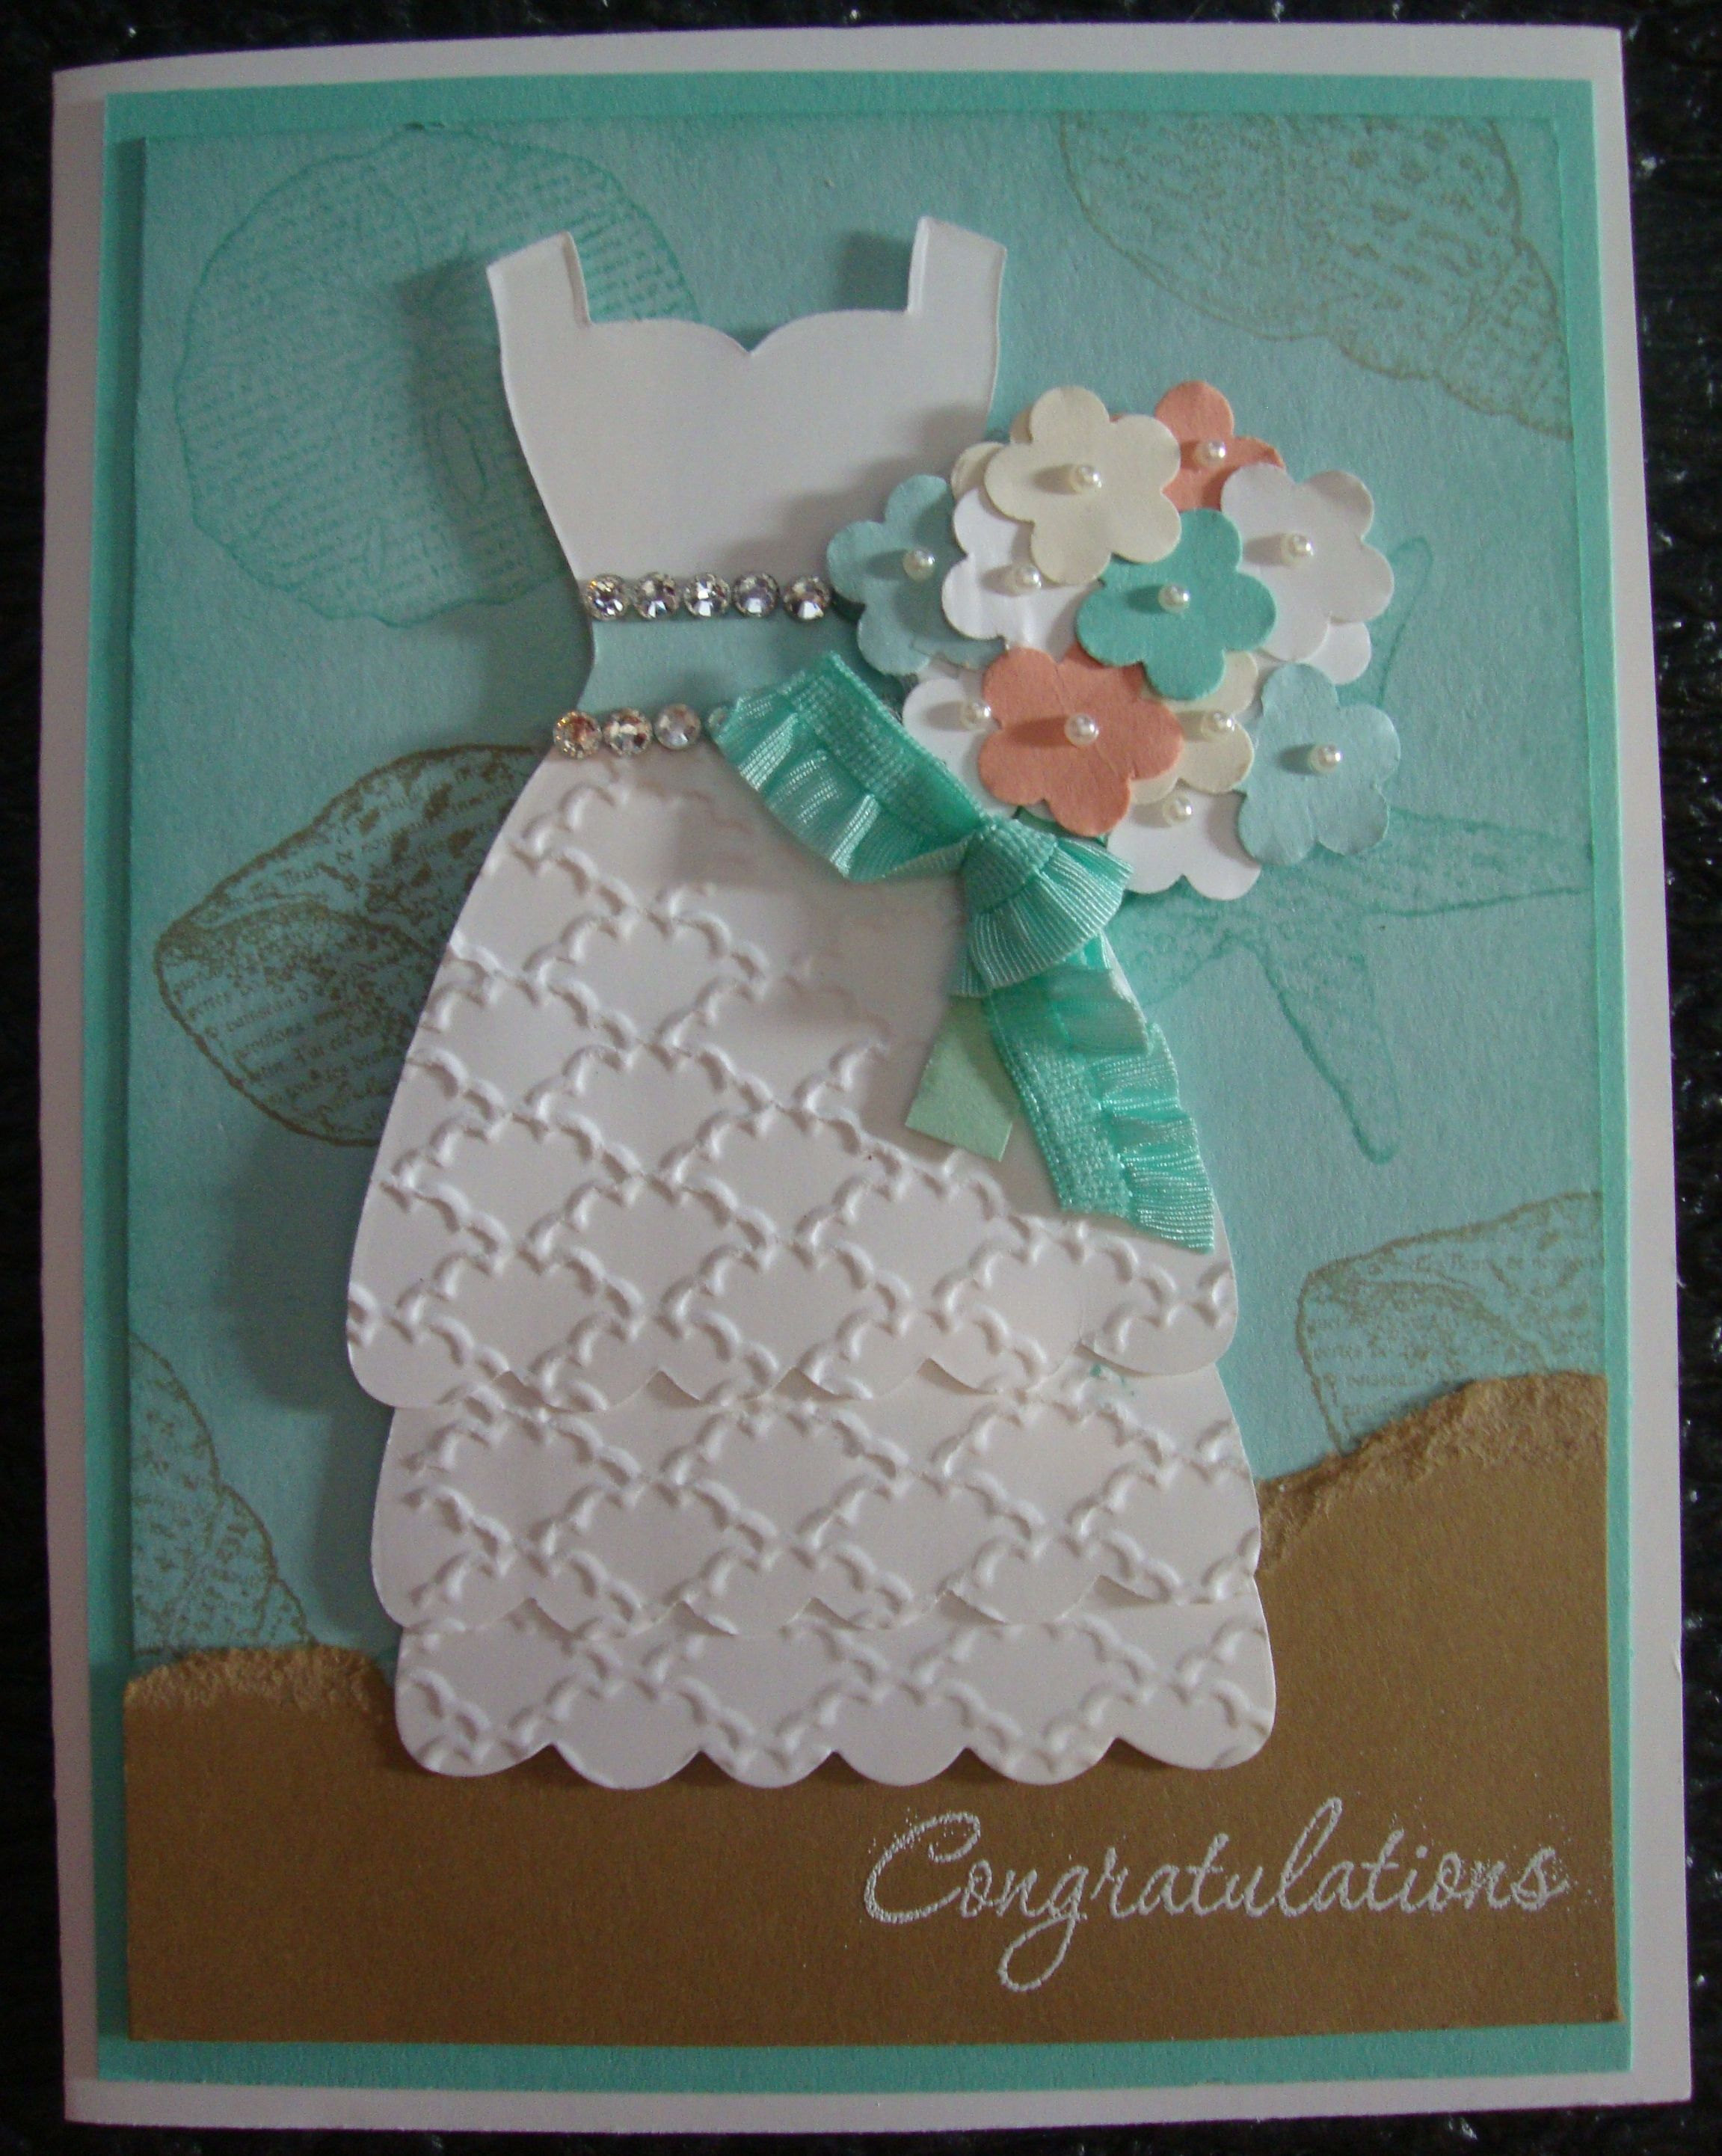 cards beautiful shower wedding new funny idea of bridal card congratulations awkward engagement